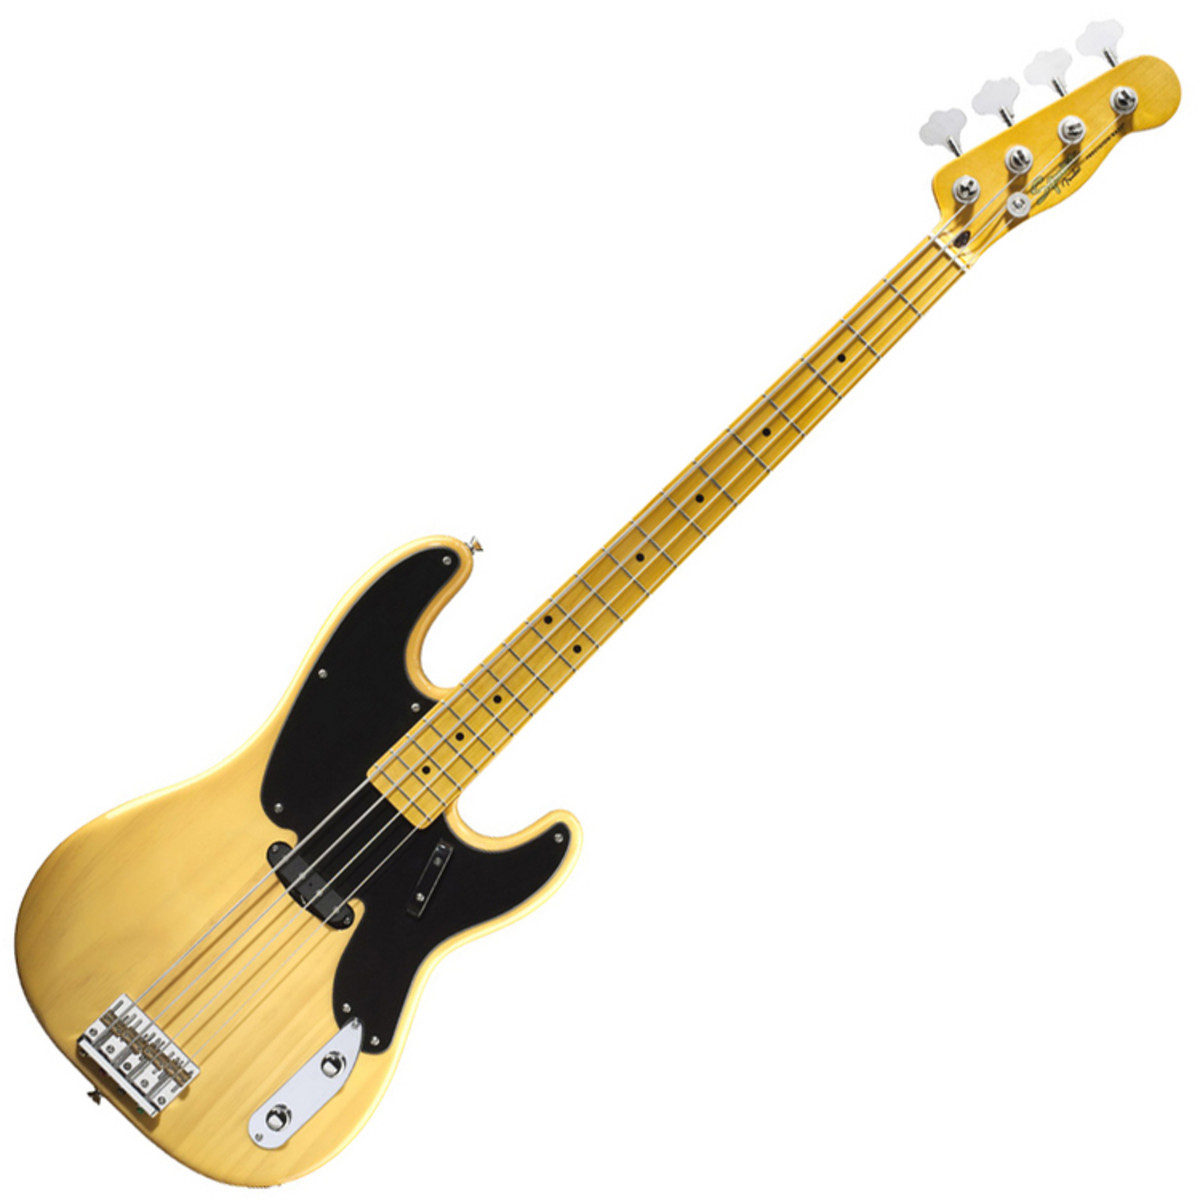 squier by fender classic vibe 50s precision bass butterscotch blonde at gear4music. Black Bedroom Furniture Sets. Home Design Ideas